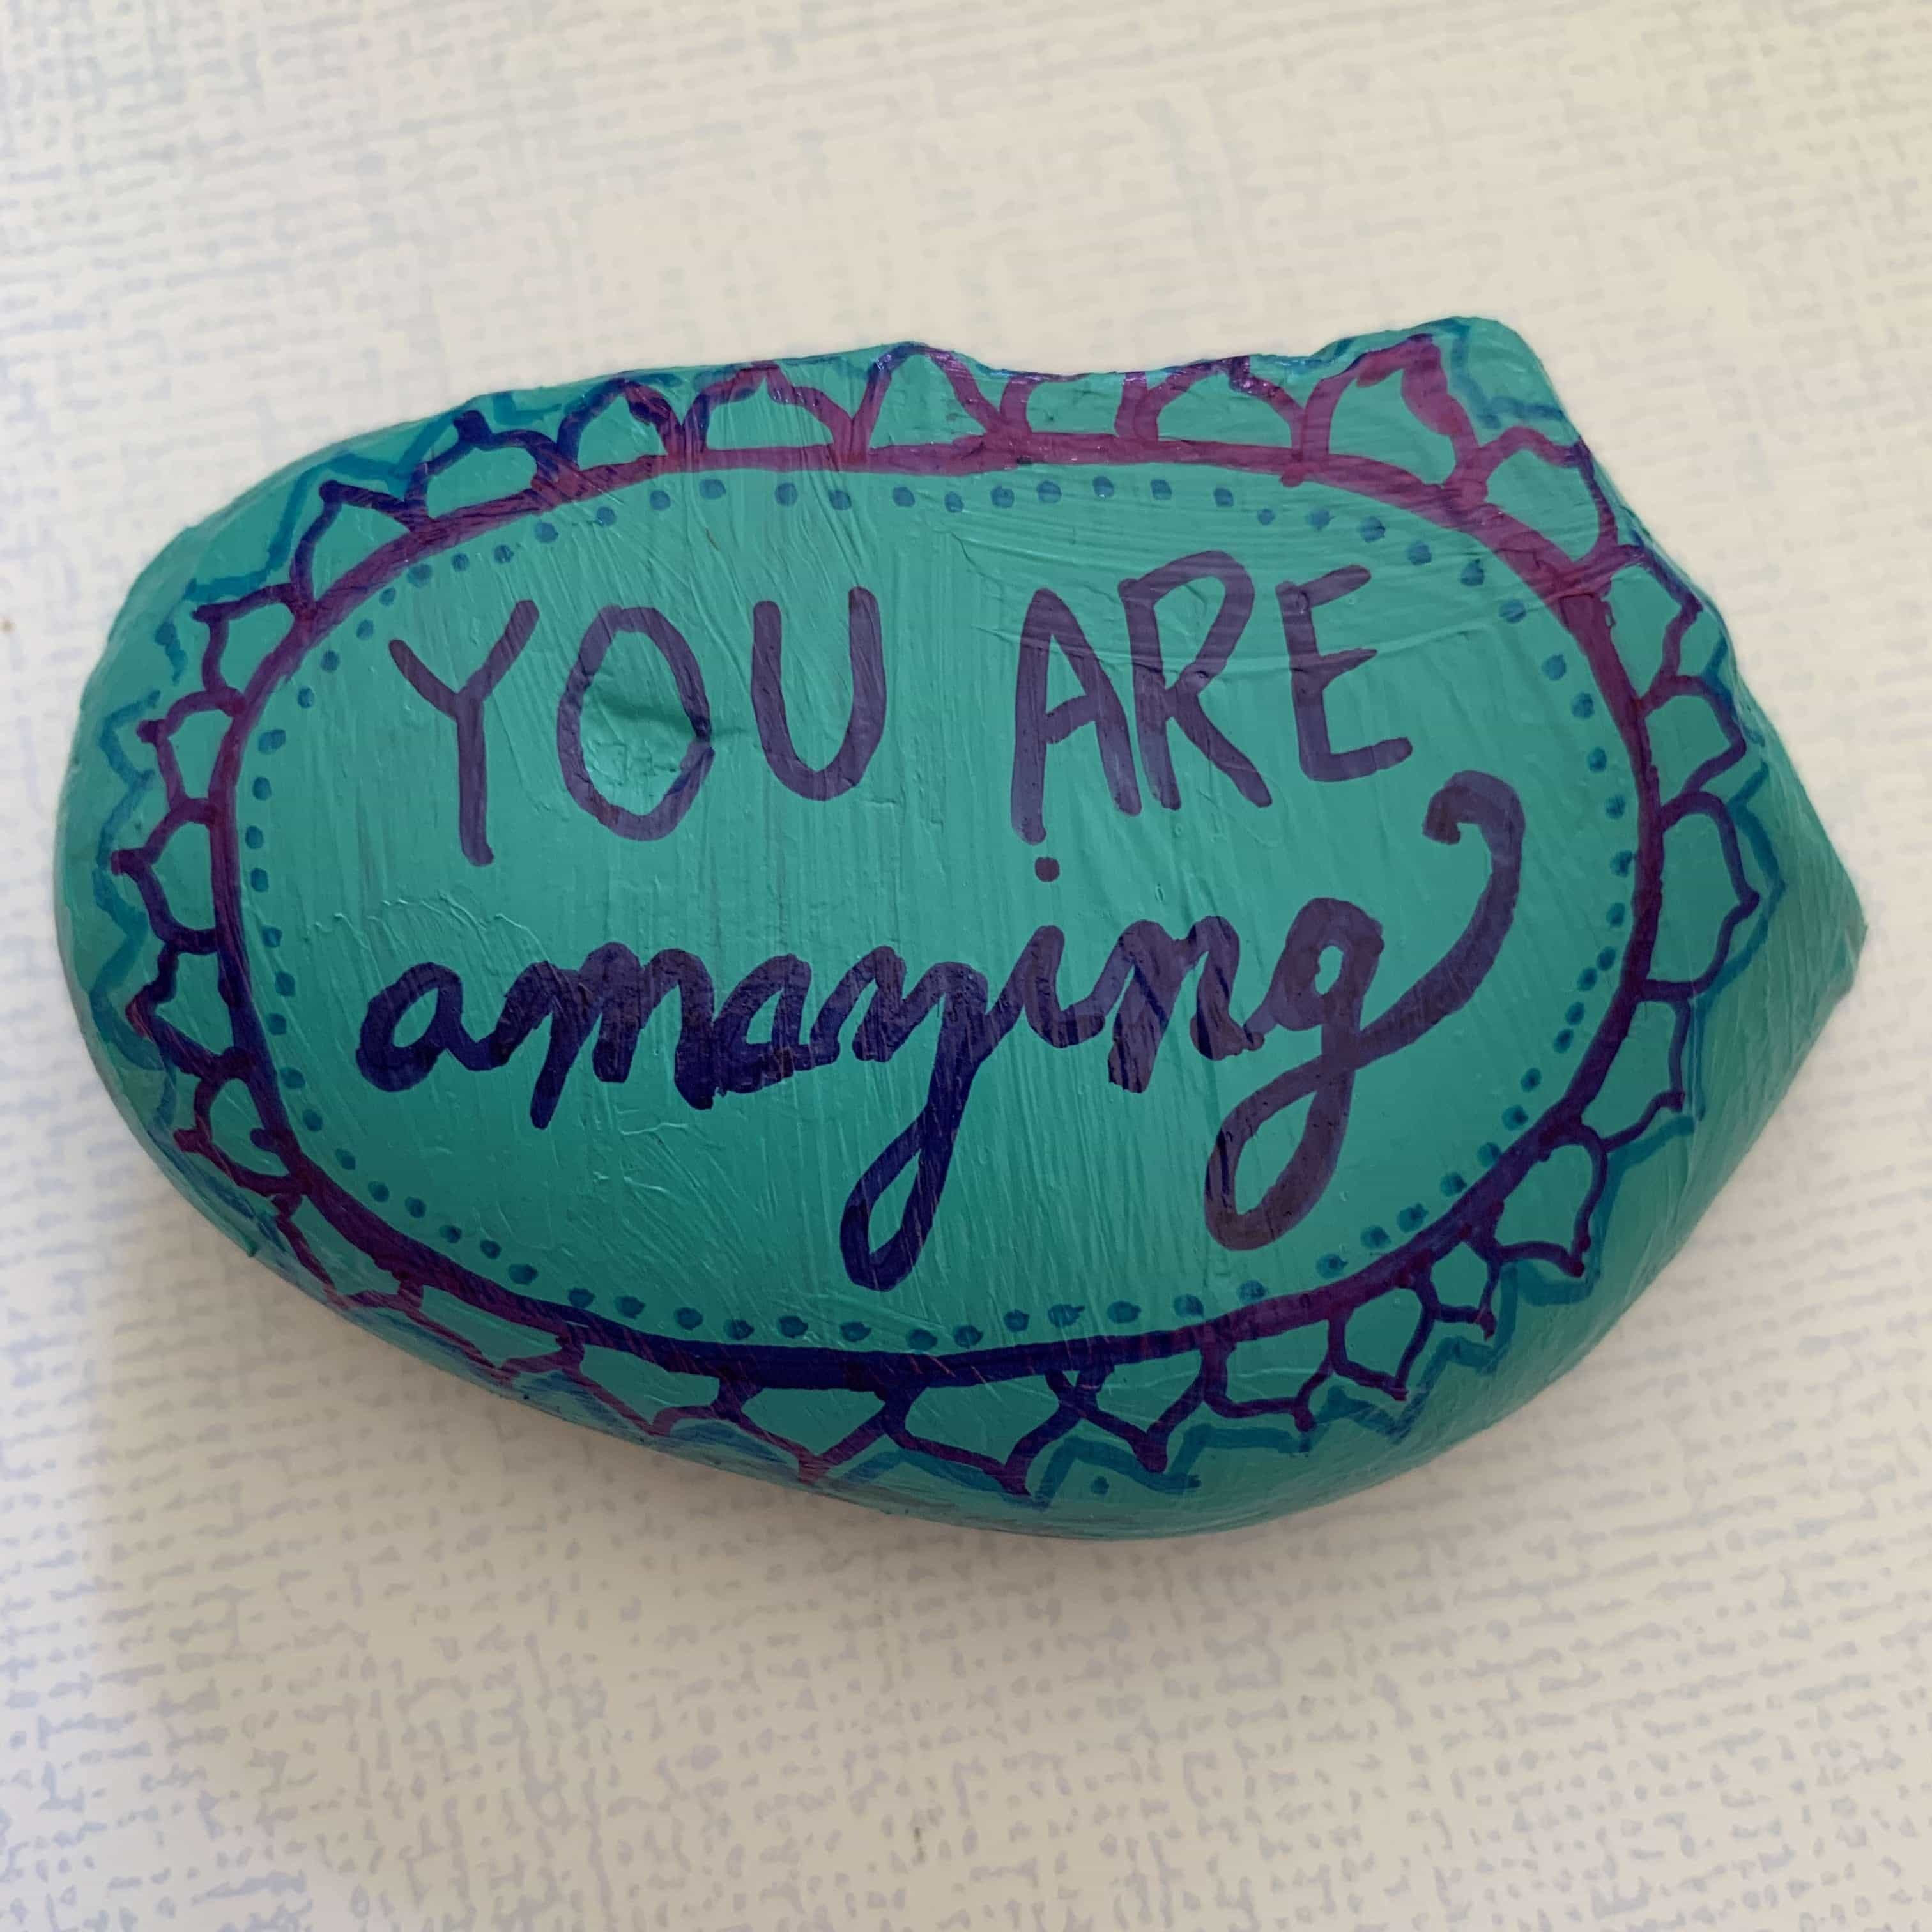 Mindfulness Craft for Kids: Affirmation Stones for Mindfulness and